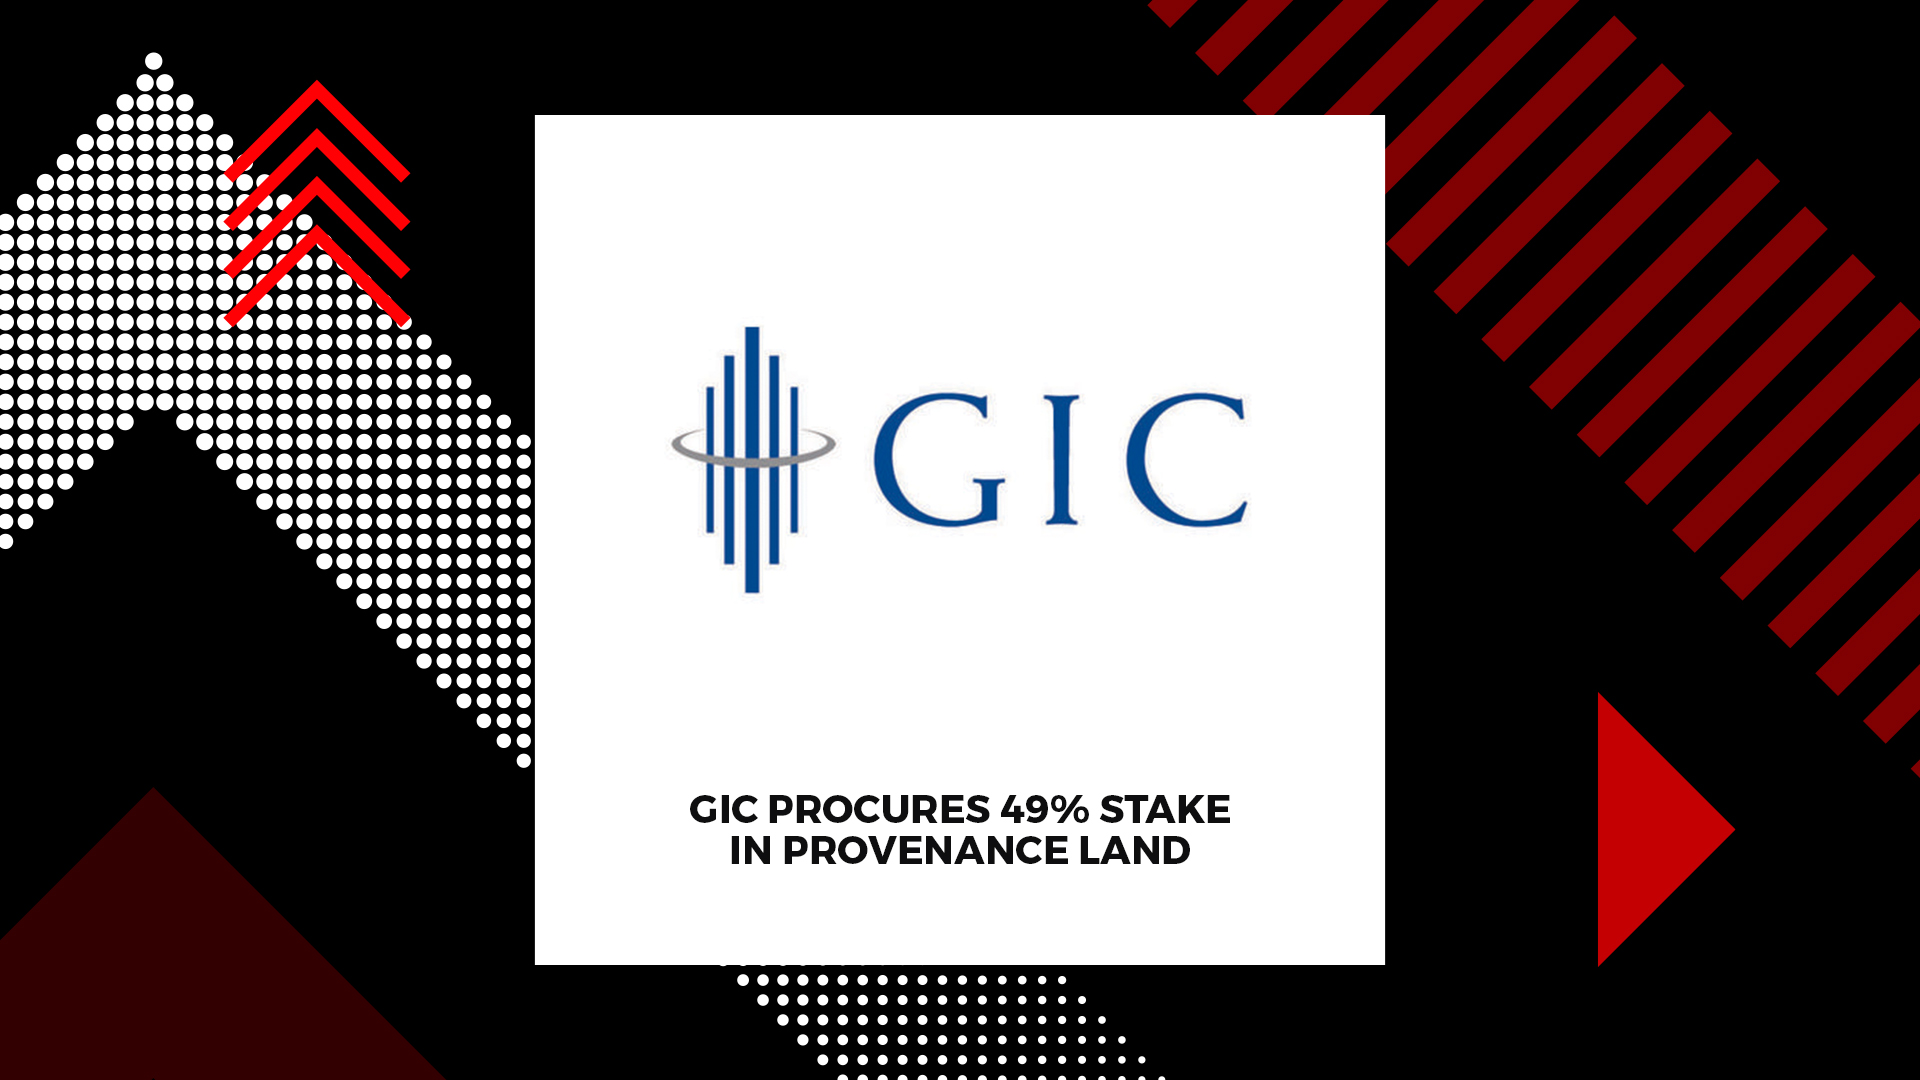 GIC To Obtain A 49% Stake In Provenance Land